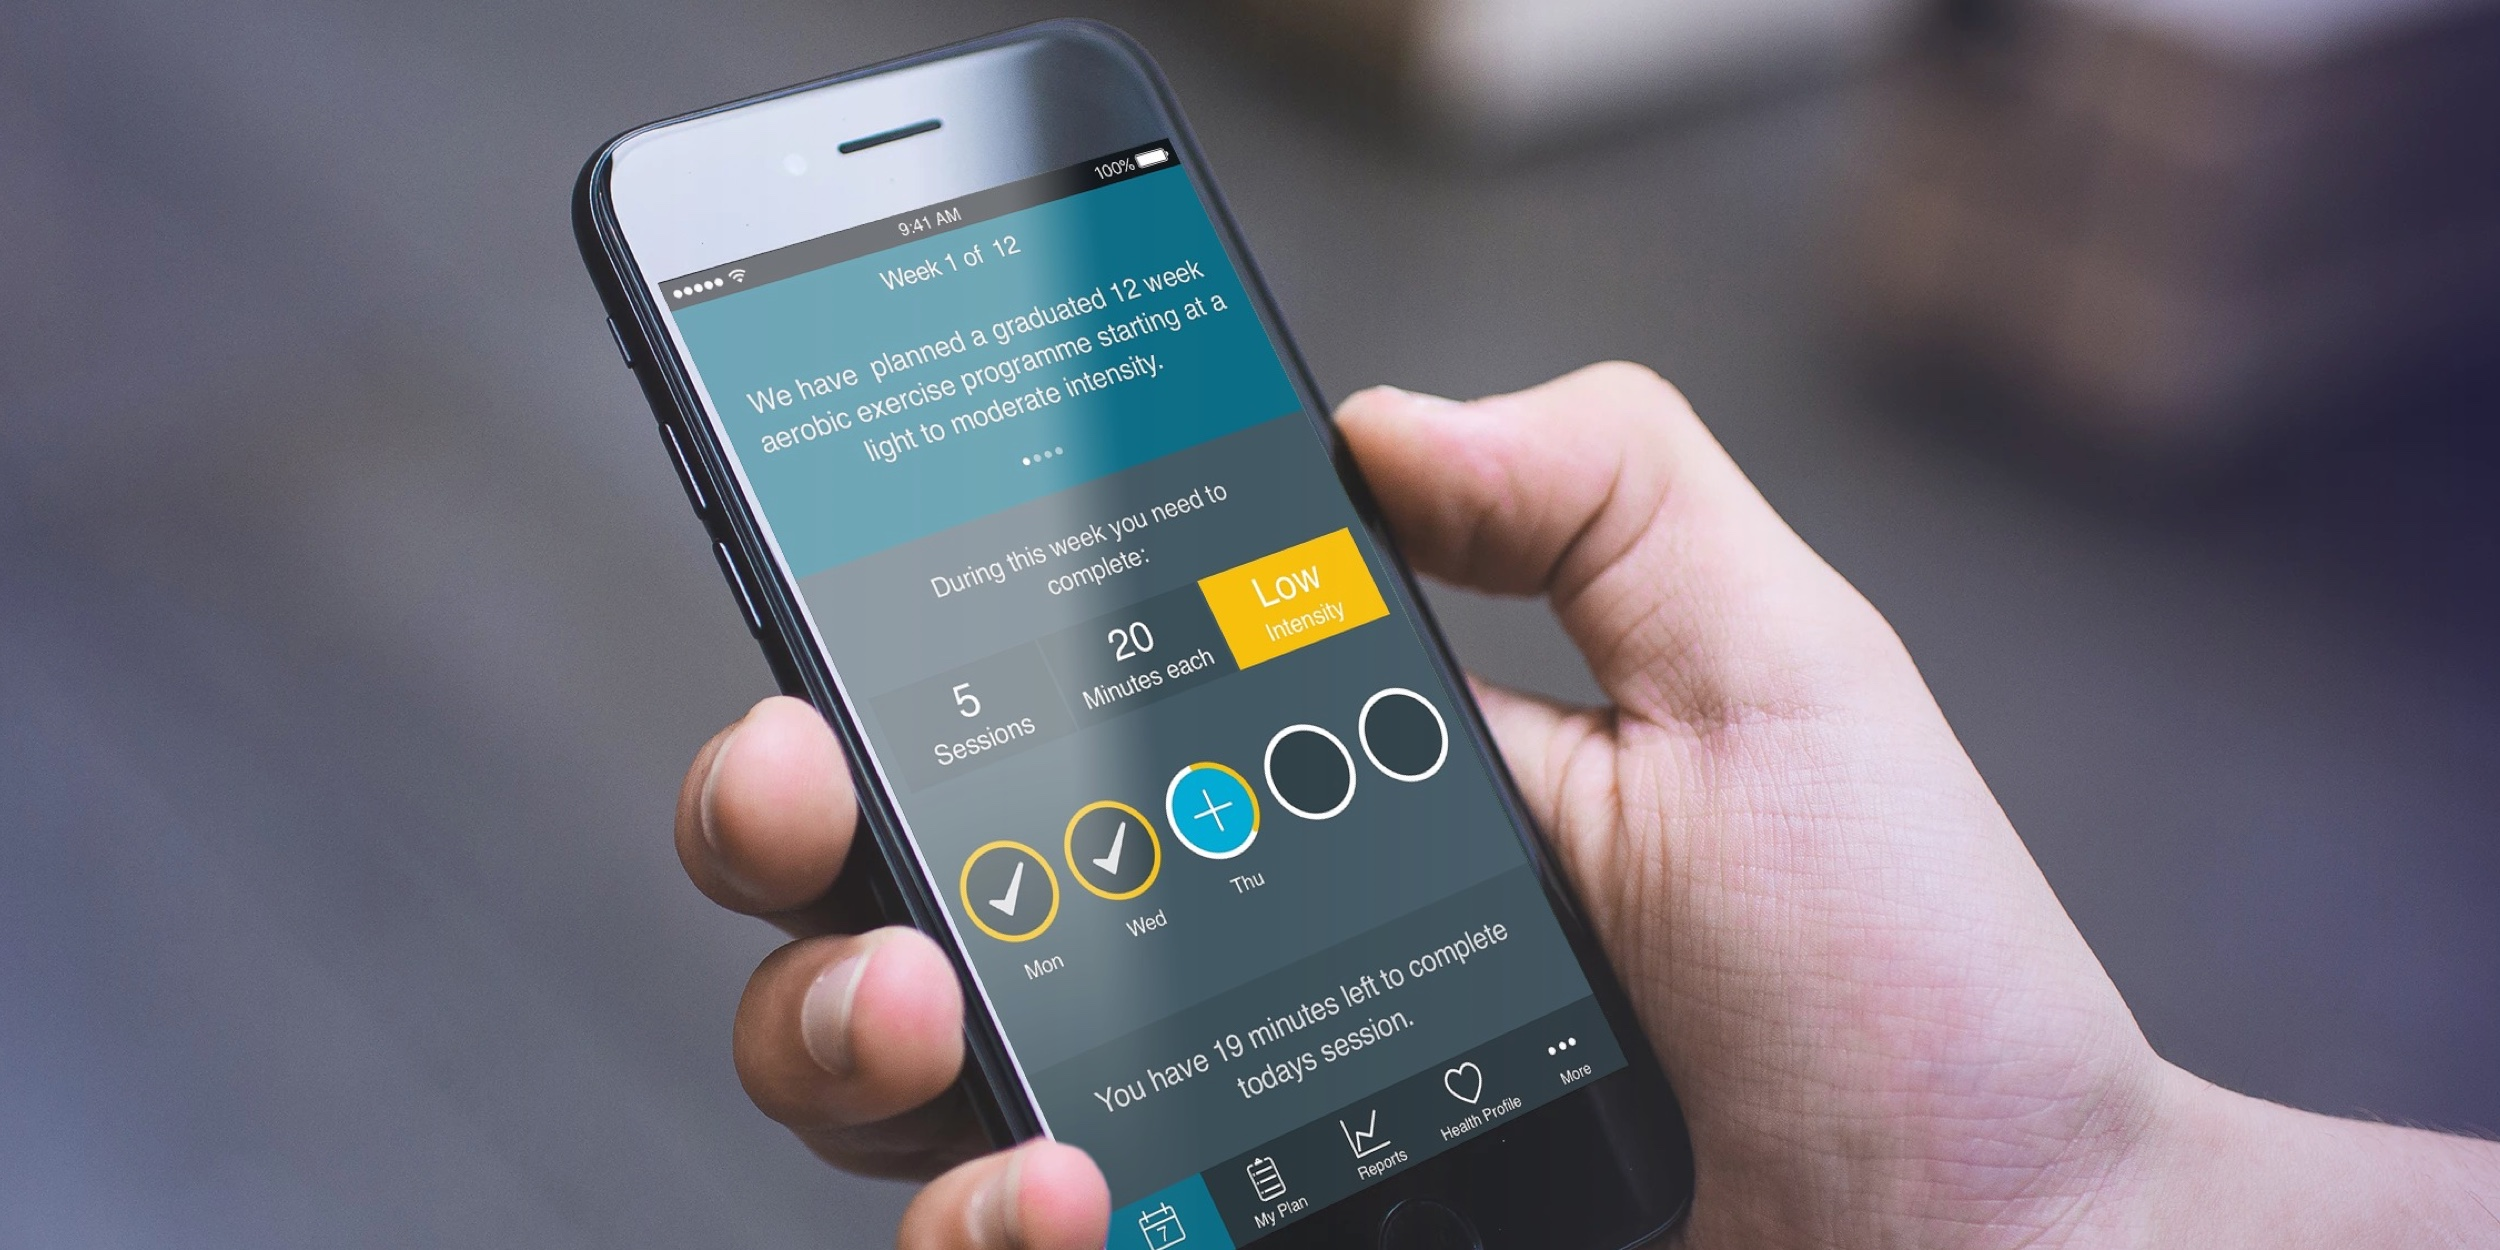 As React Native app development specialists, we were engaged to design and develop the iPrescribe app. This health technology app delivers a personalised physical activity programme for people with various conditions, from mild asthma to cancer. The app contains tools to allow users to exercise safely, with an algorithm that incrementally modifies their routine as their fitness increases, while providing visual feedback and motivation to carry on.